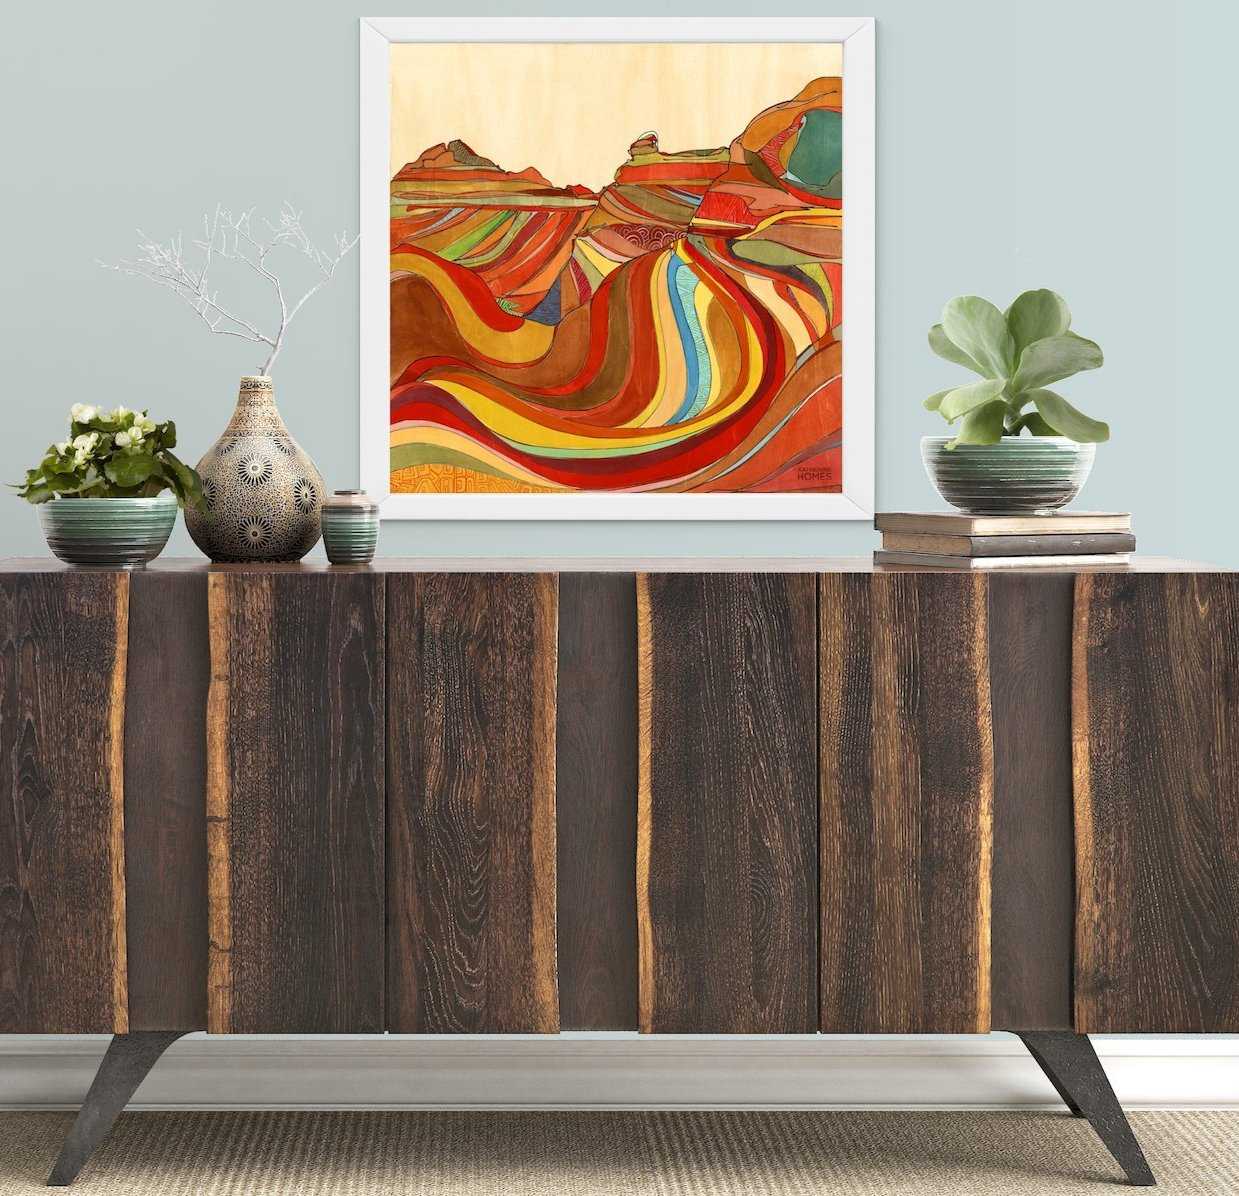 Katherine Homes The Wave, Arizona Print